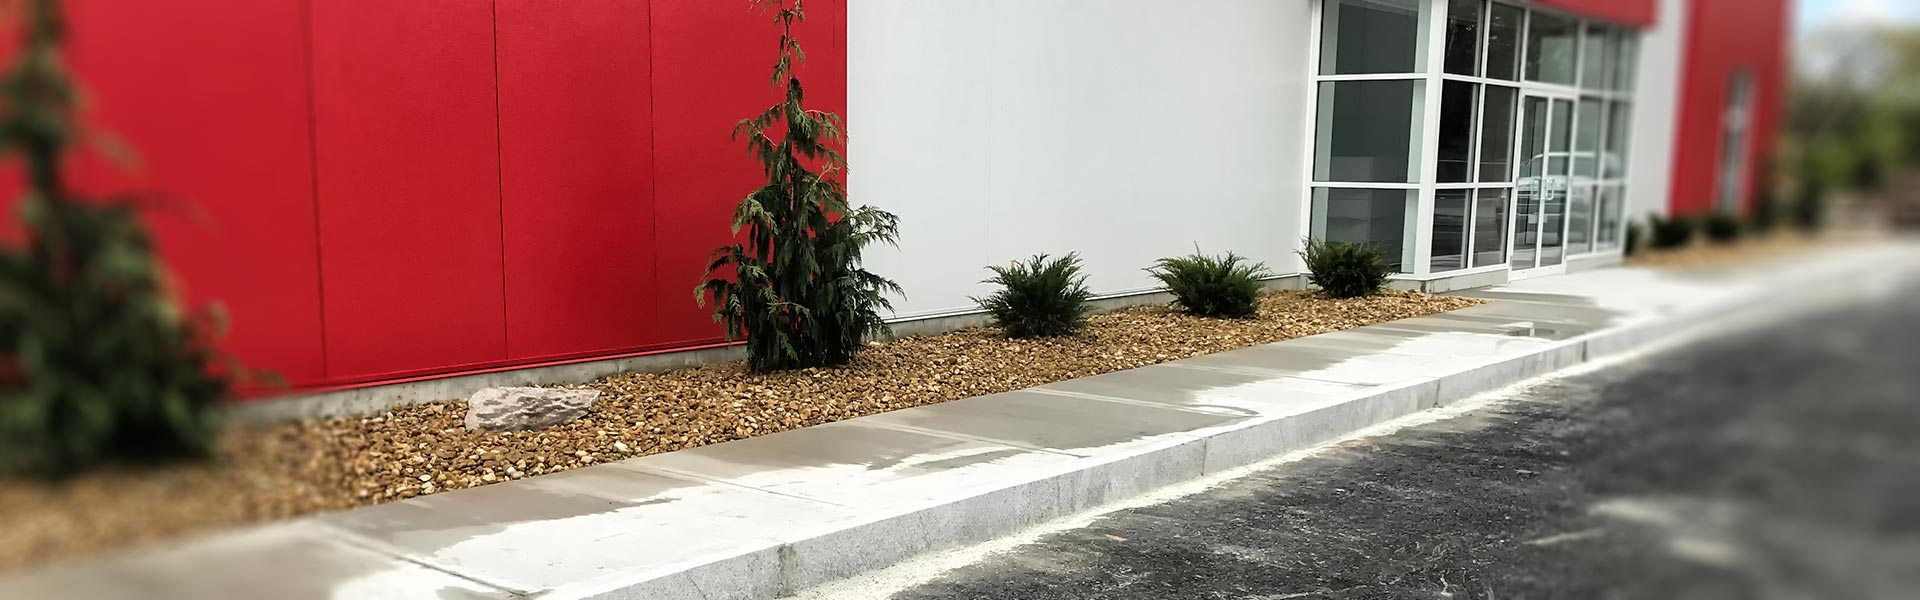 Commercial landscaping with stone and plantings